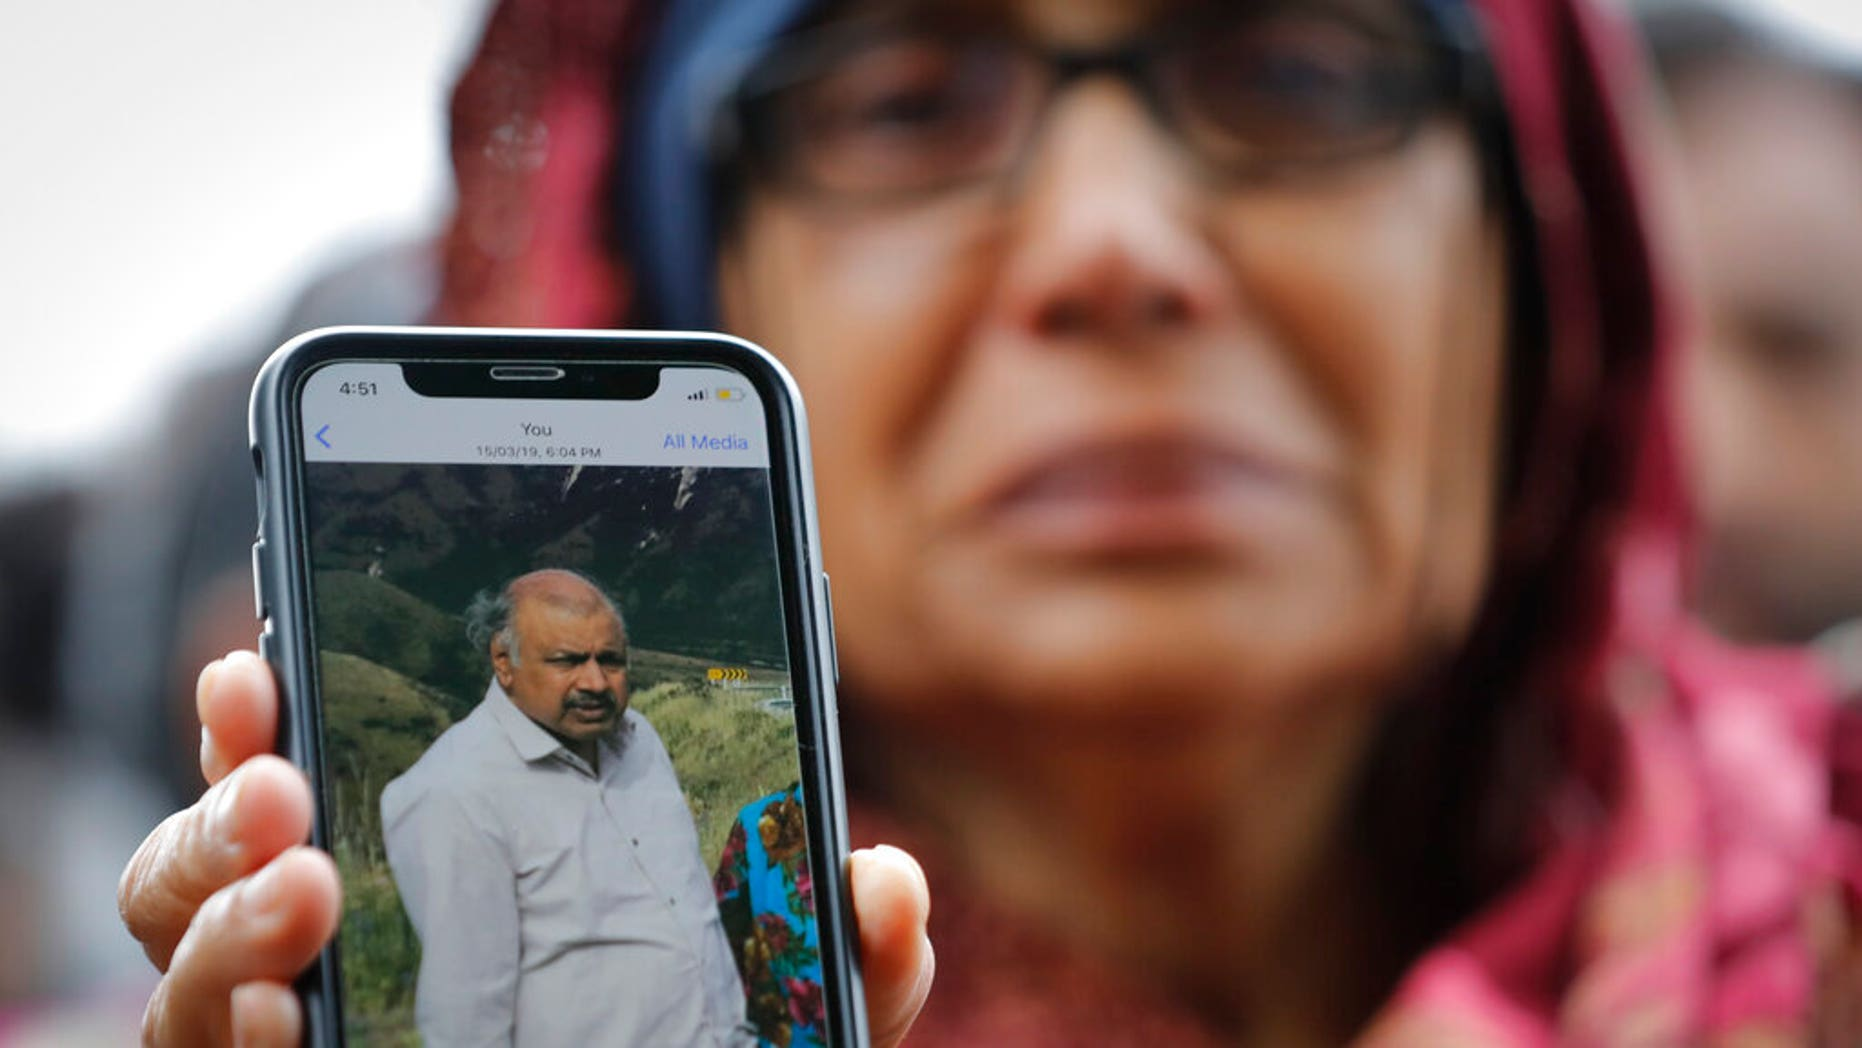 Akhtar Khokhur, 58, shows a picture of her missing husband Mehaboobbhai Khokhar during an interview outside an information center for families this weekend in Christchurch, New Zealand. (AP Photo/Vincent Thian)